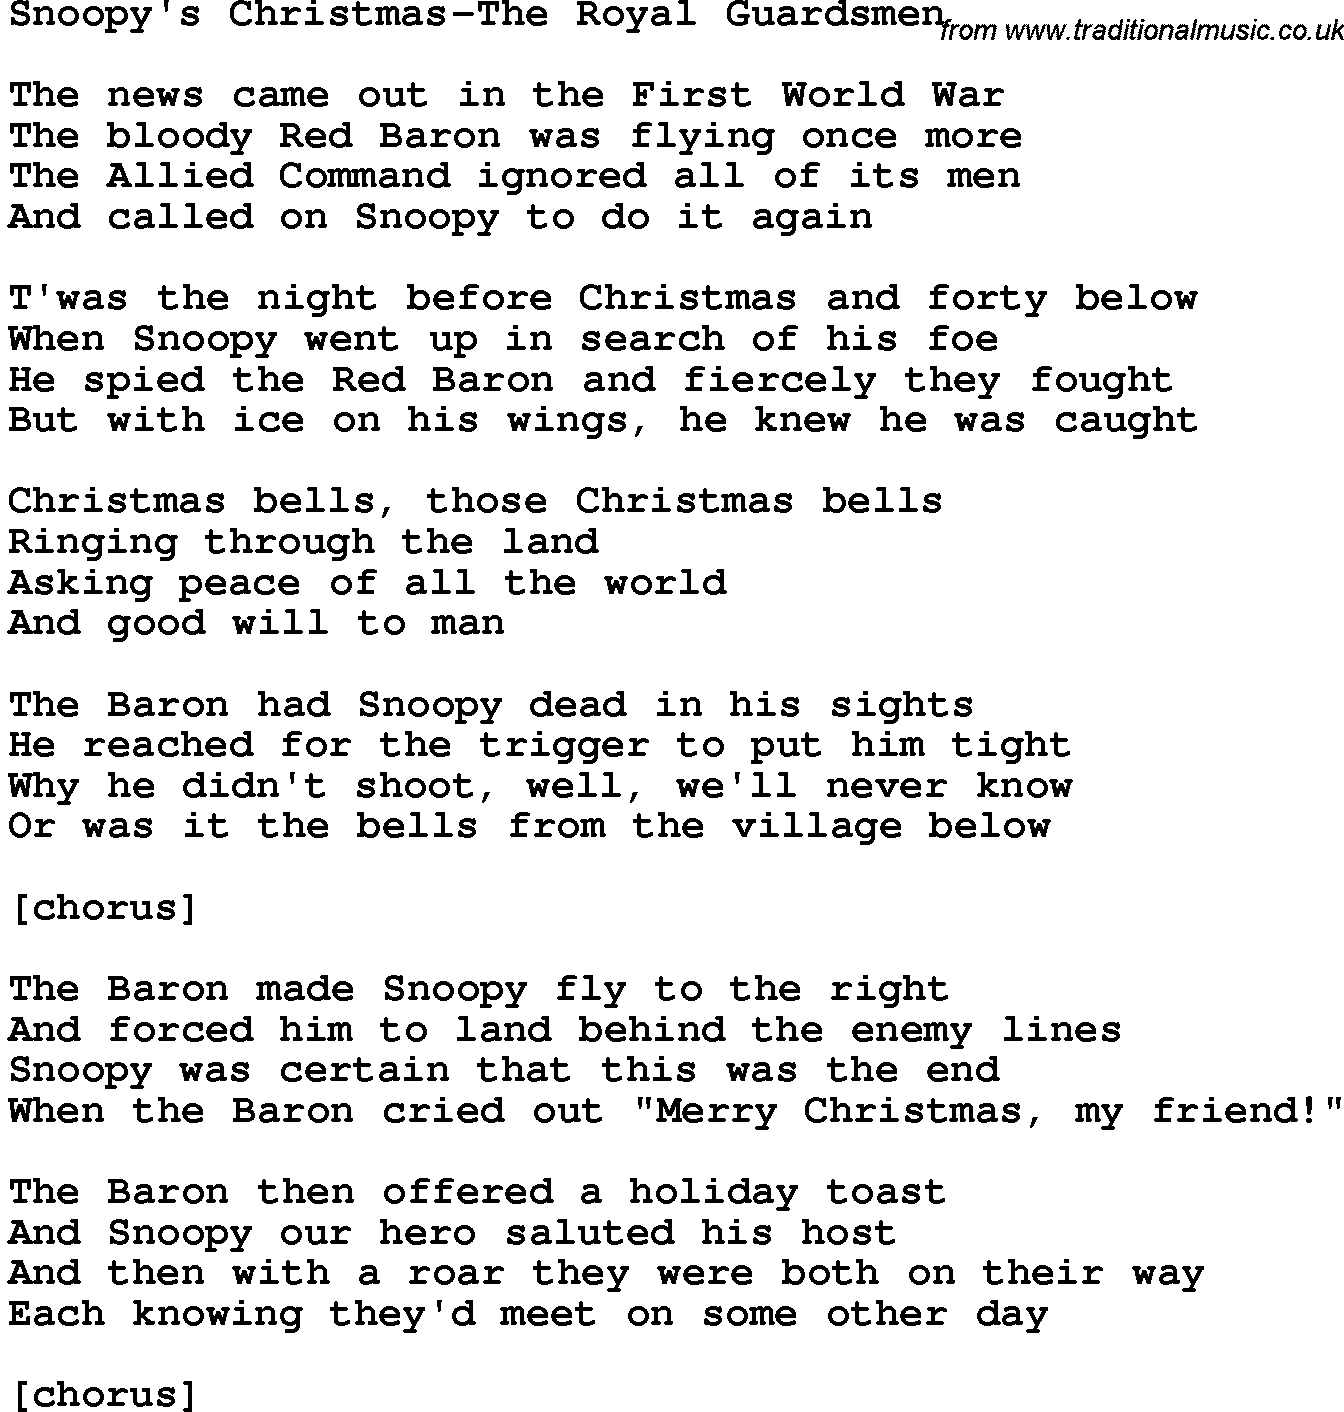 Snoopys Christmas Lyrics.Royal Guardsmen Novelty Song Snoopy S Christmas The Royal